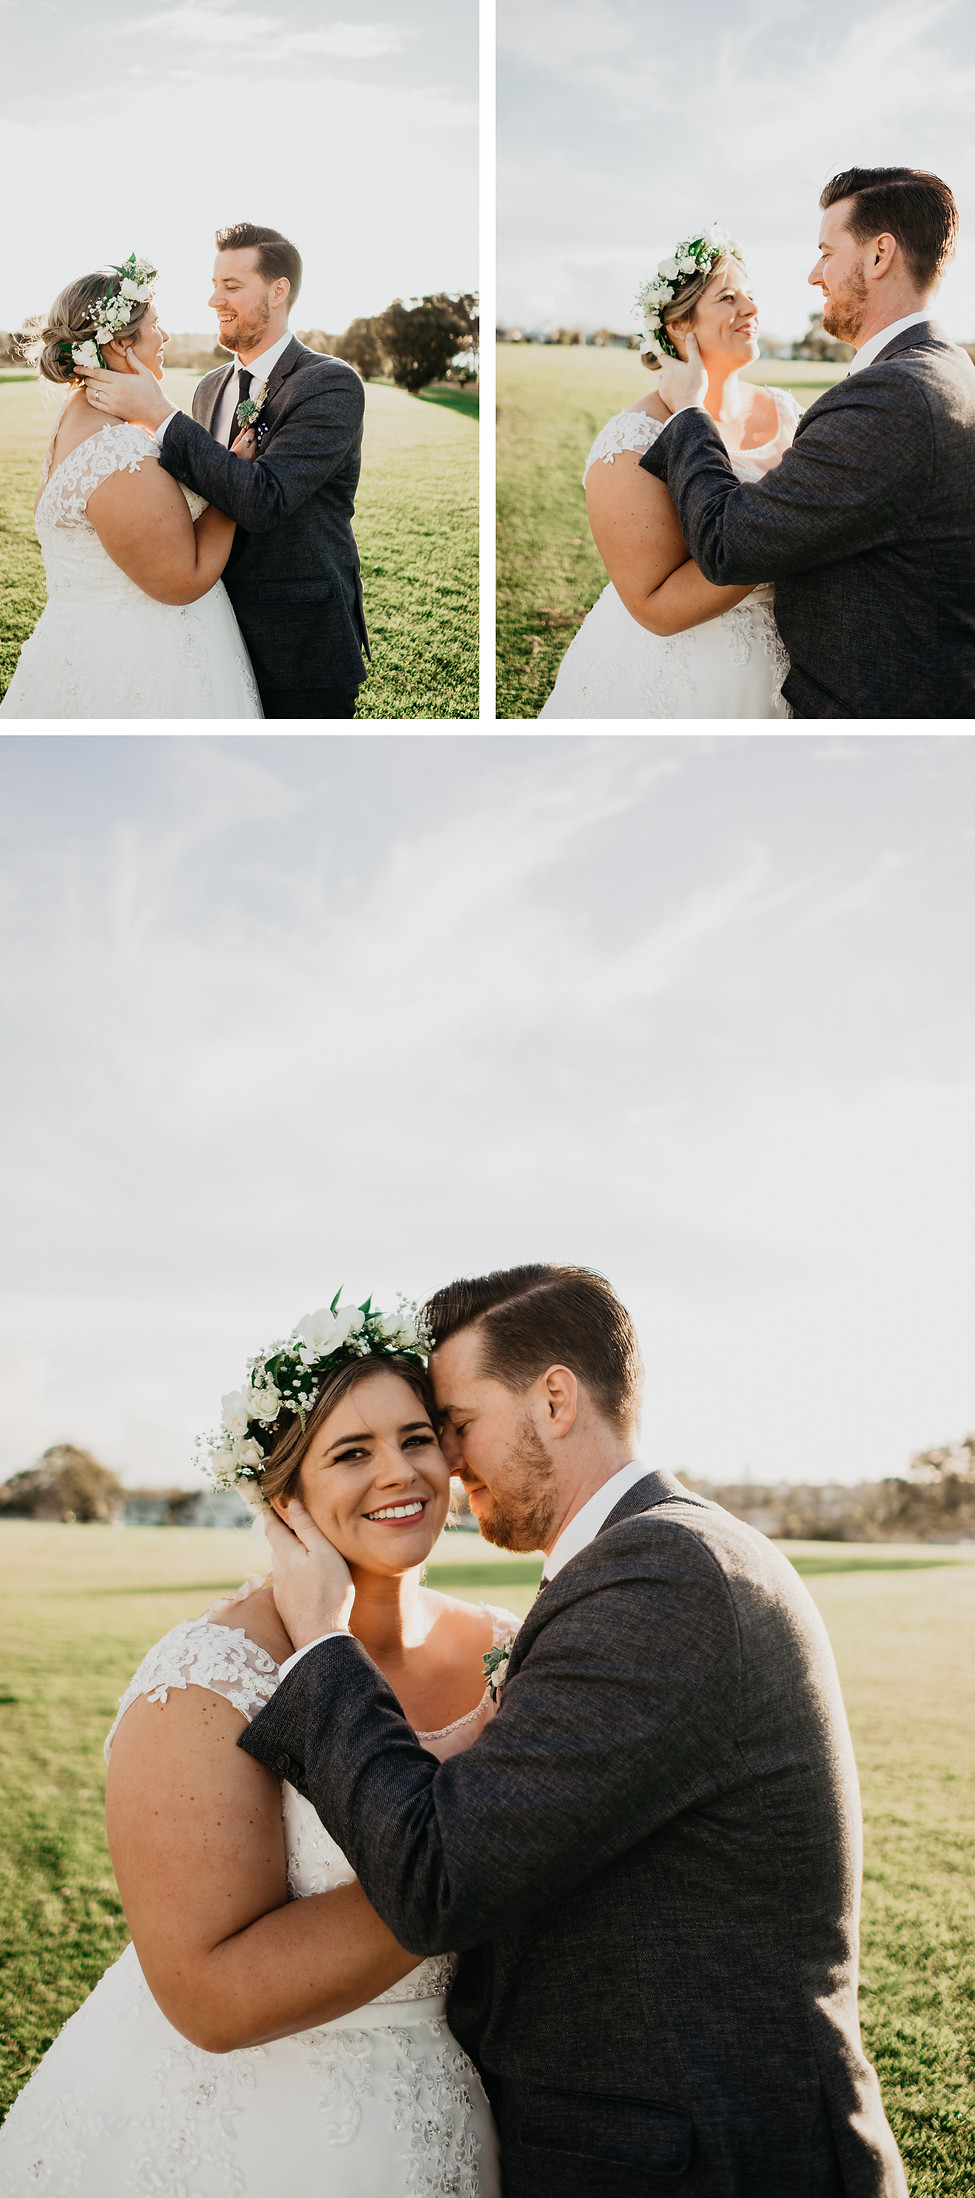 bridal photos at the officers mess in narrow neck, auckland, new zealand. Floral crown